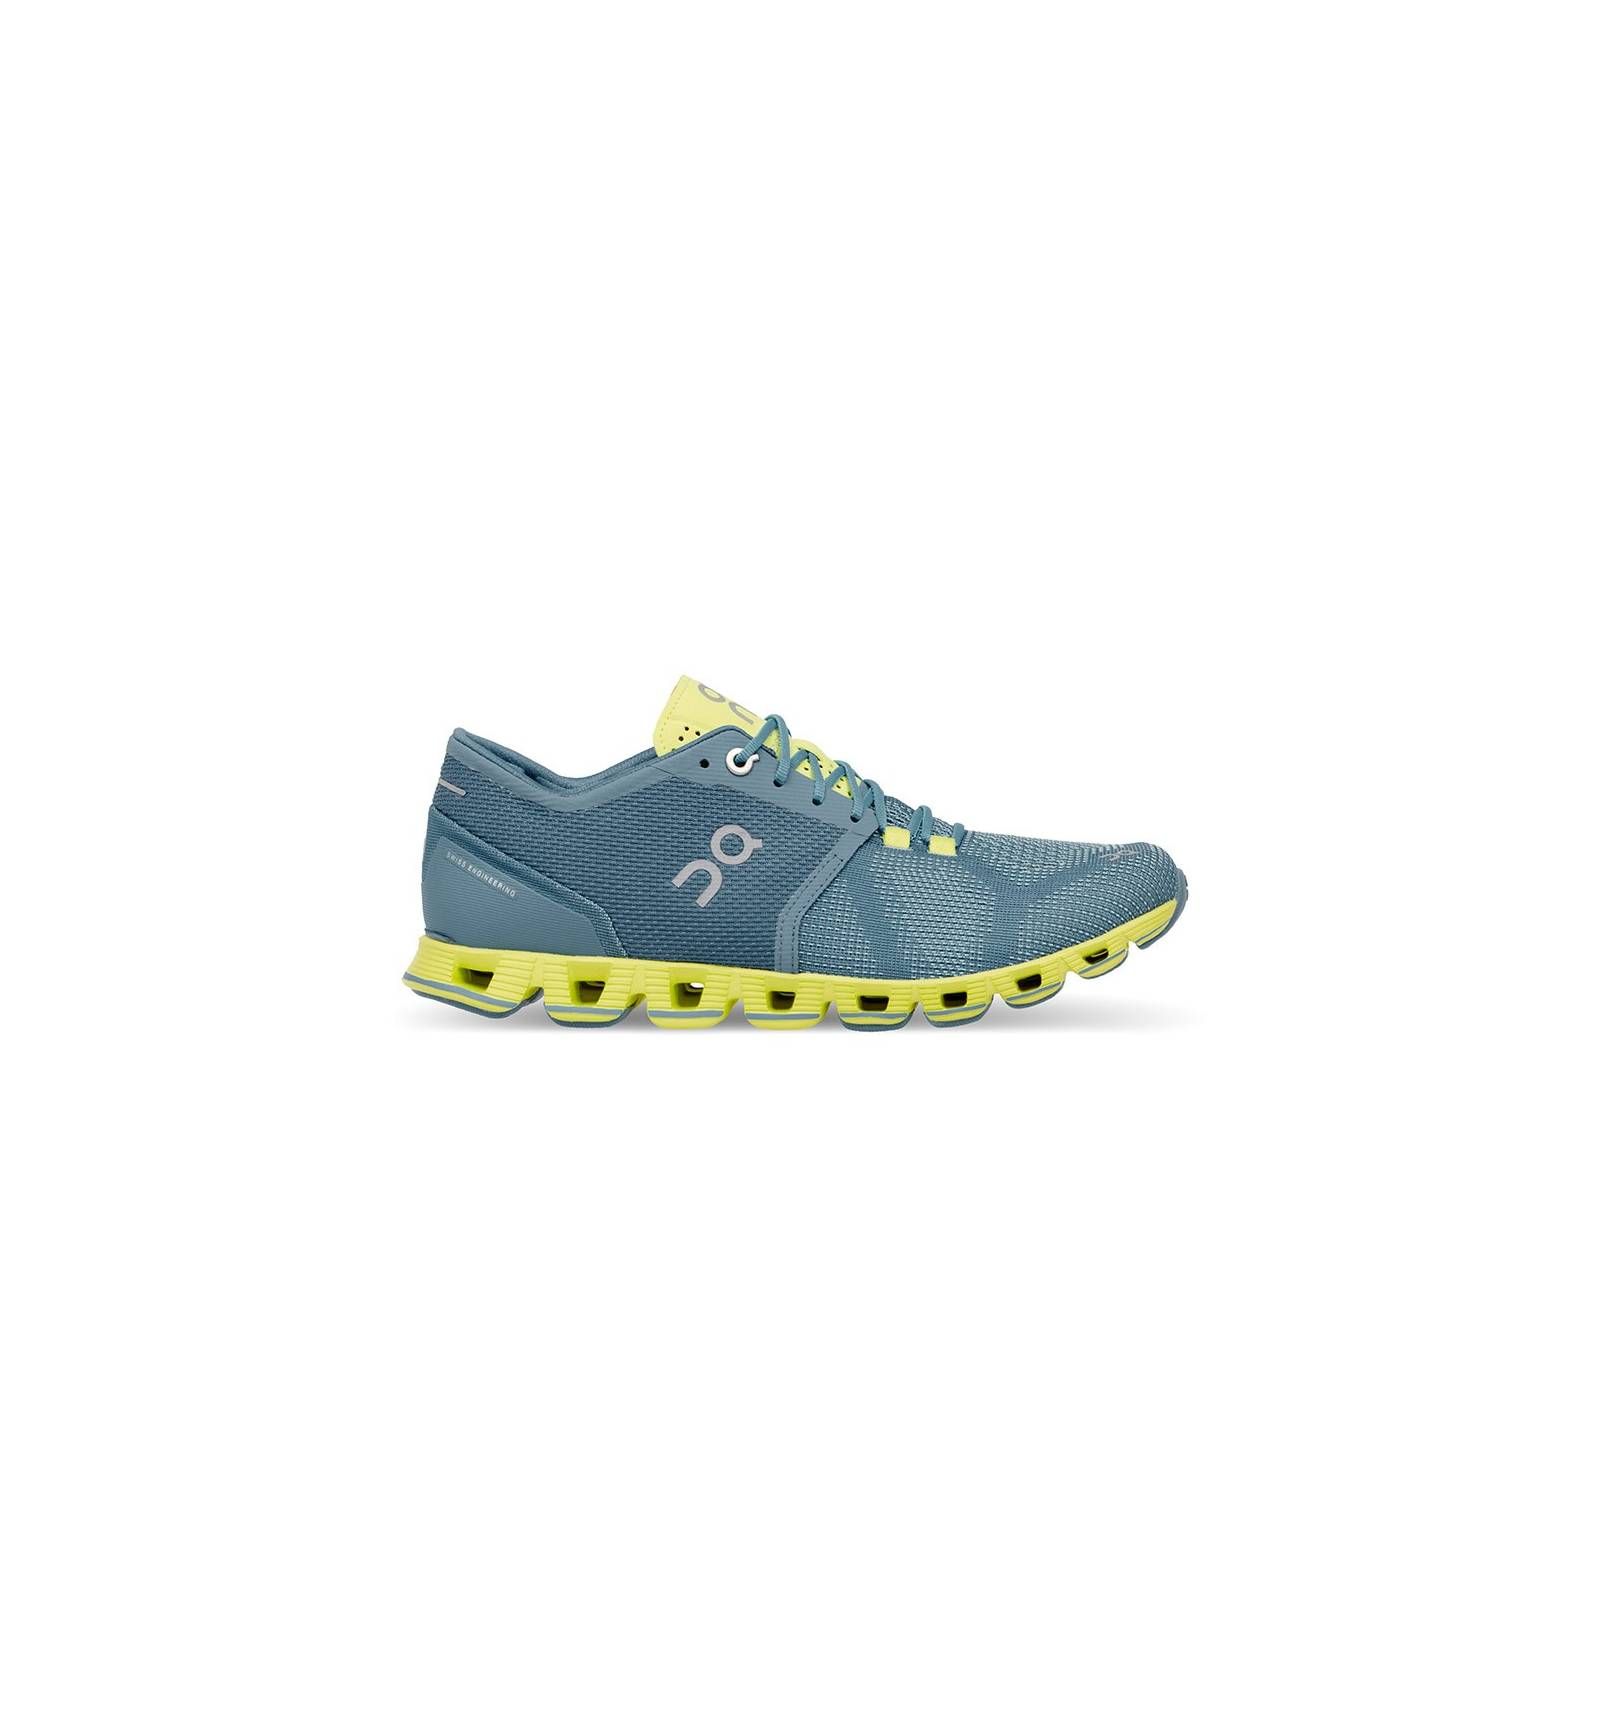 ZAPATILLAS ON CLOUD X NIAGARA   LIME PARA MUJER - ON RUNNING 2990b653f8ad2